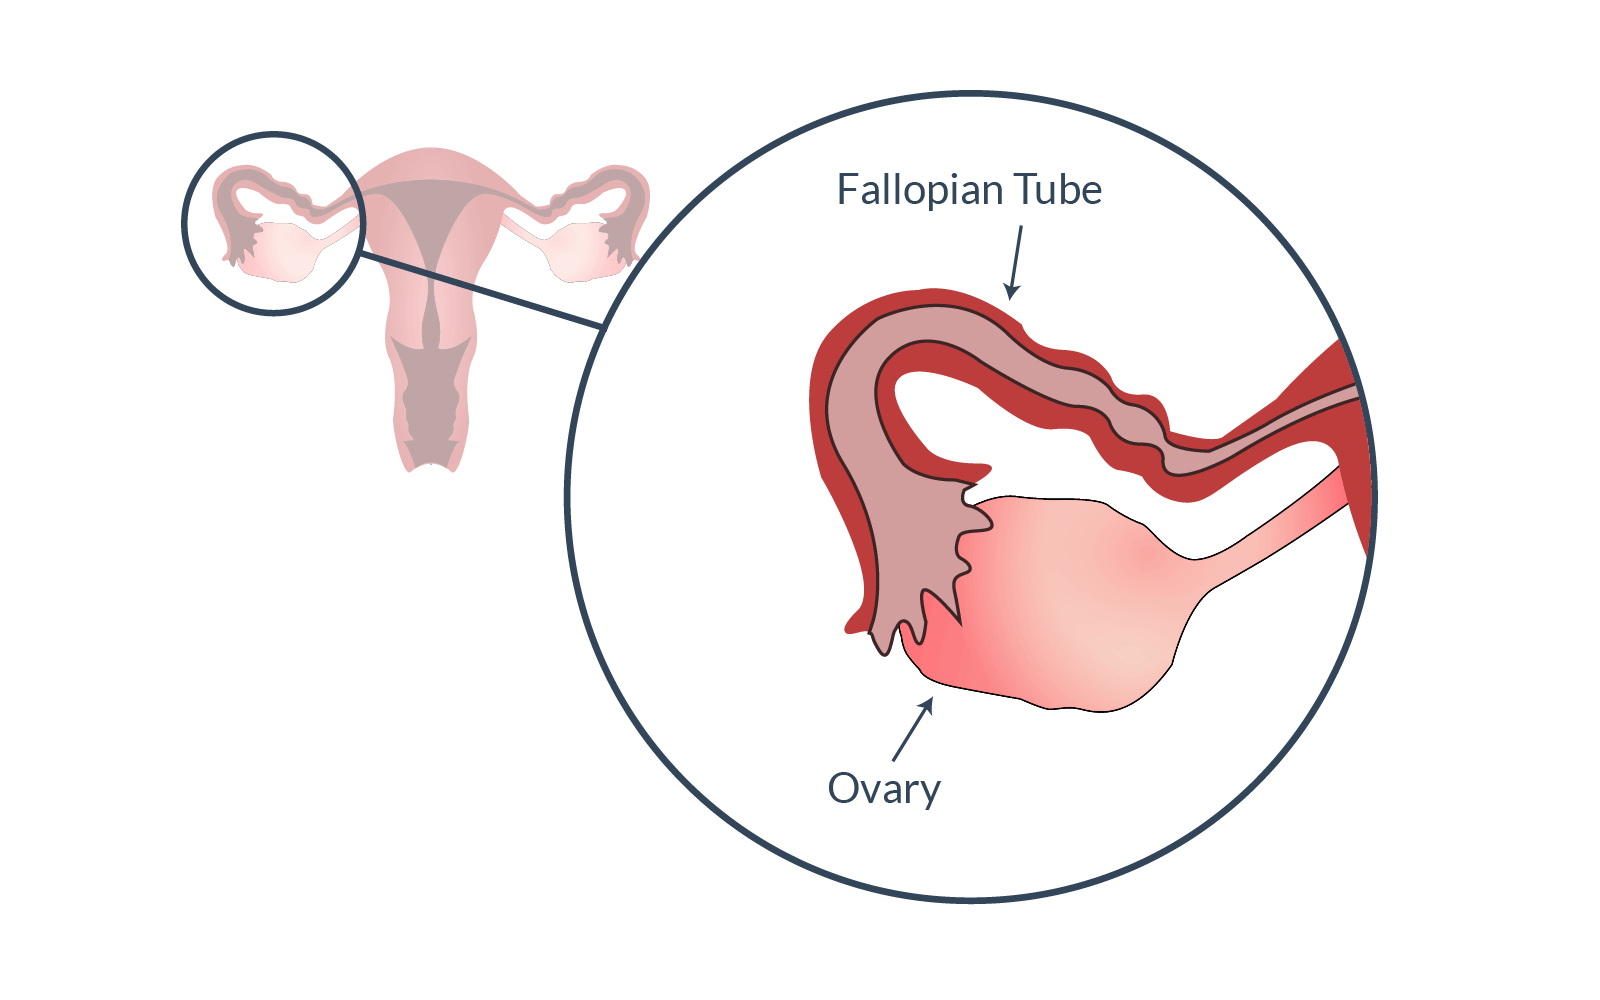 Fallopian tube and ovary